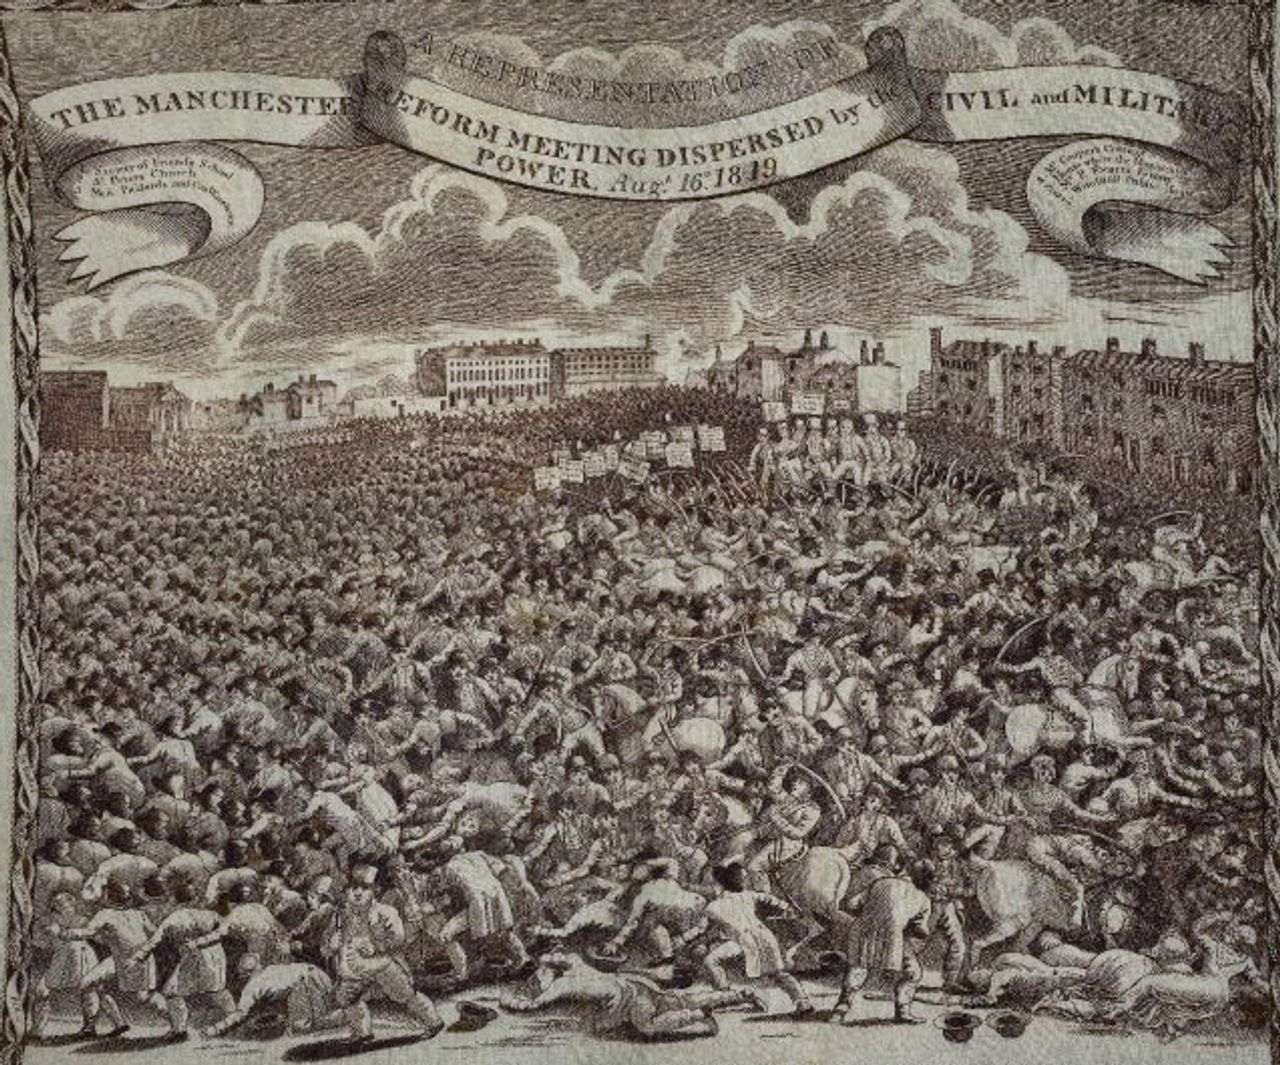 Handkerchief depicting the Peterloo Massacre, courtesy of the British Museum